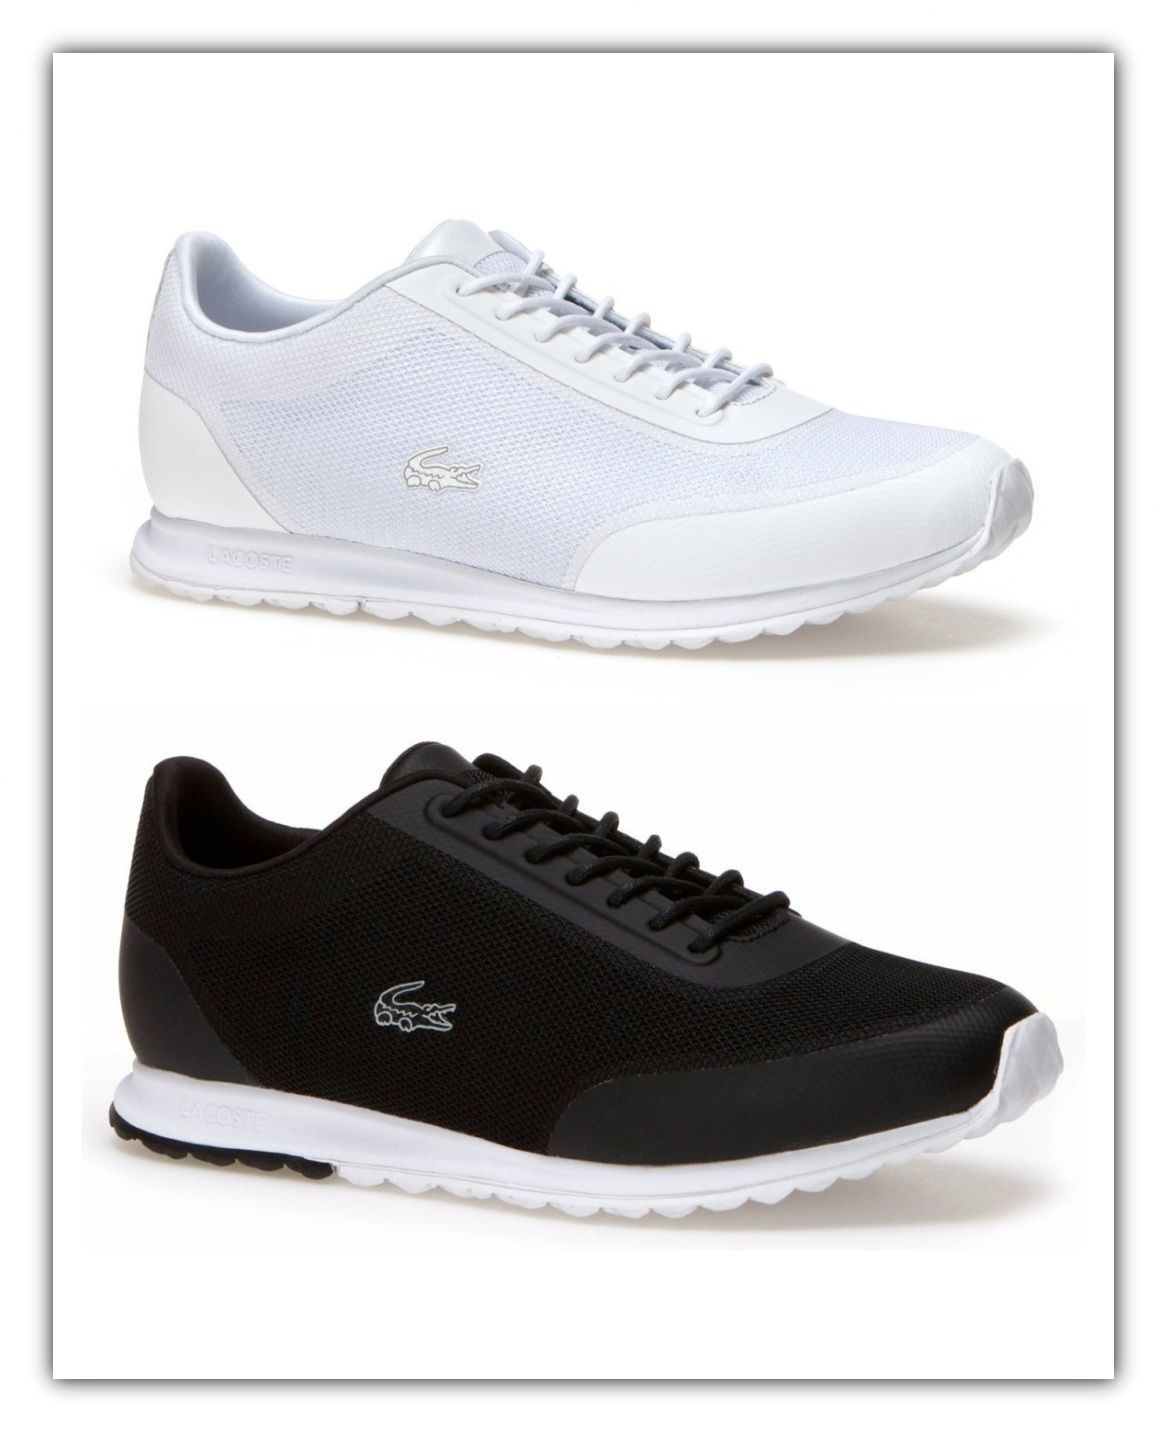 Lacoste Womens Shoes Helaine Runner 116 3 Sneakers Black/White